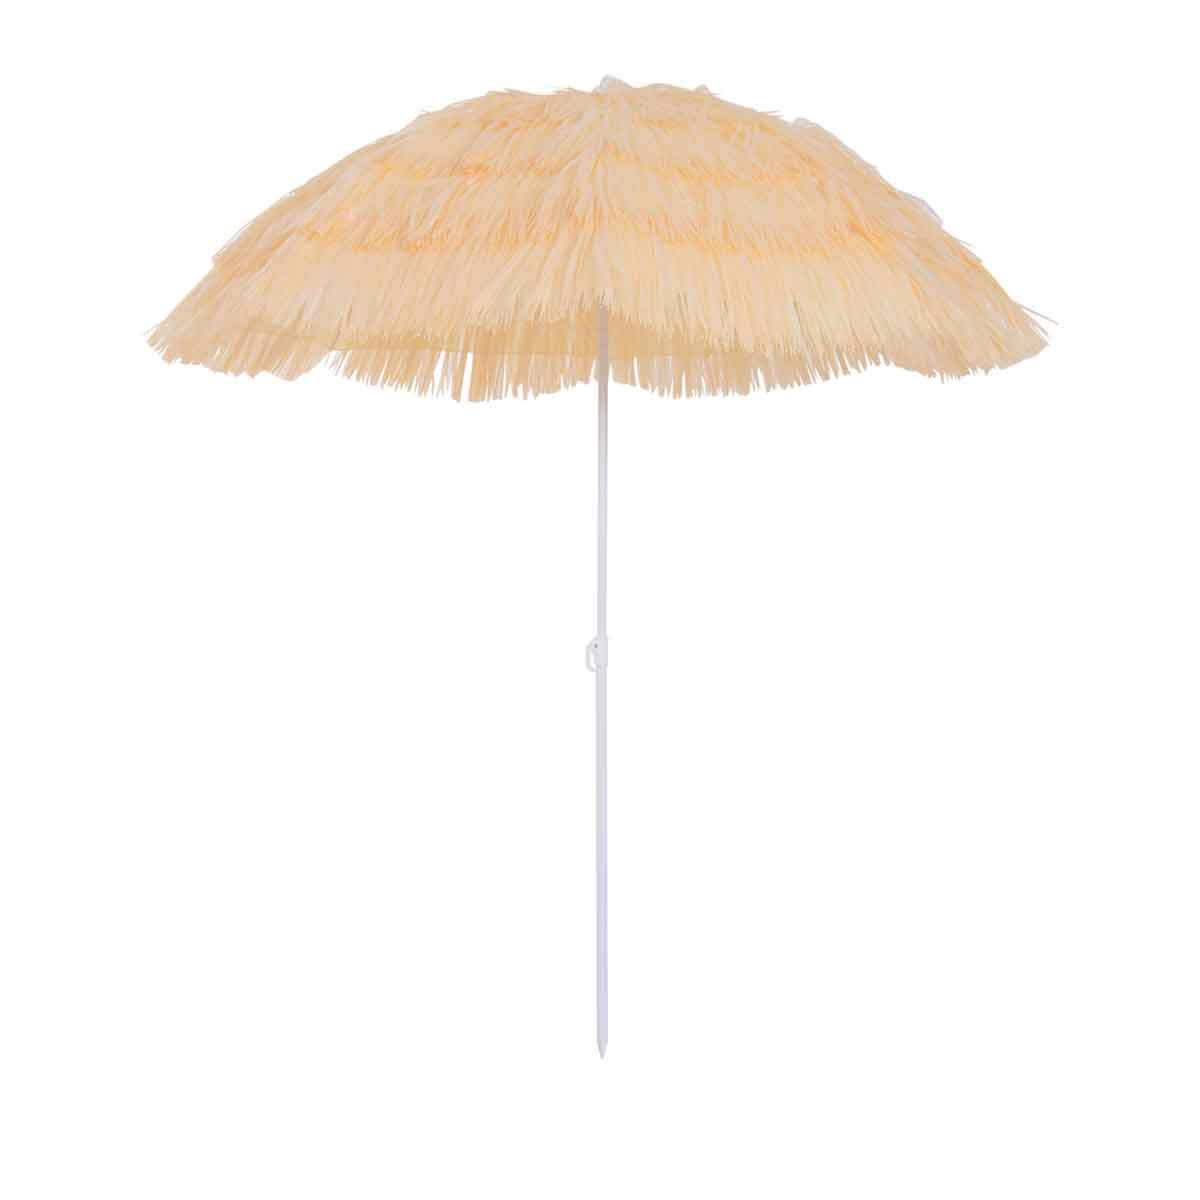 Outsunny Hawaii Garden Parasol (base not included) - Yellow